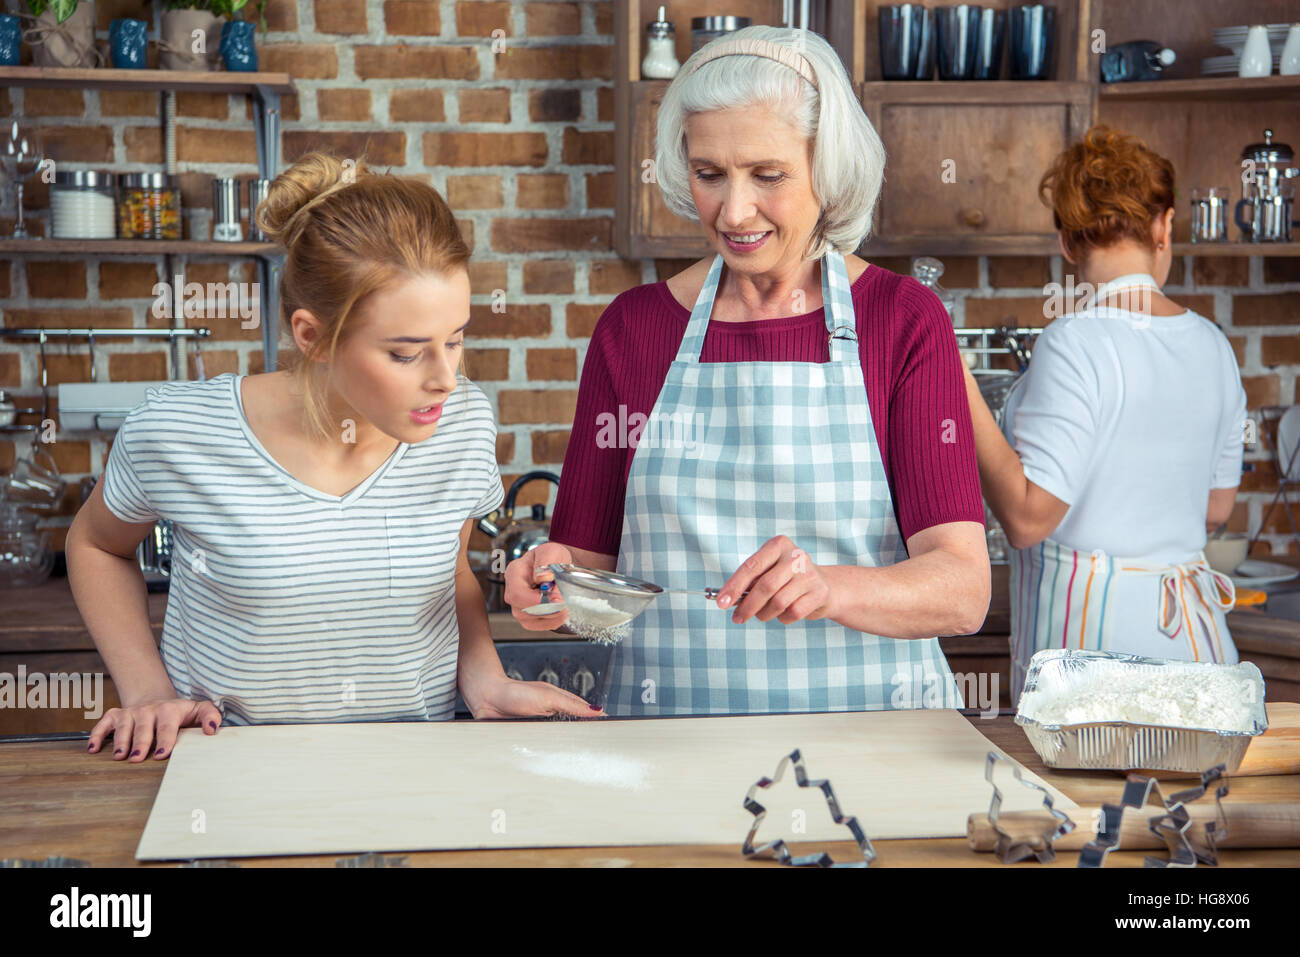 Grandmother and granddaughter sifting flour for cookies in kitchen - Stock Image